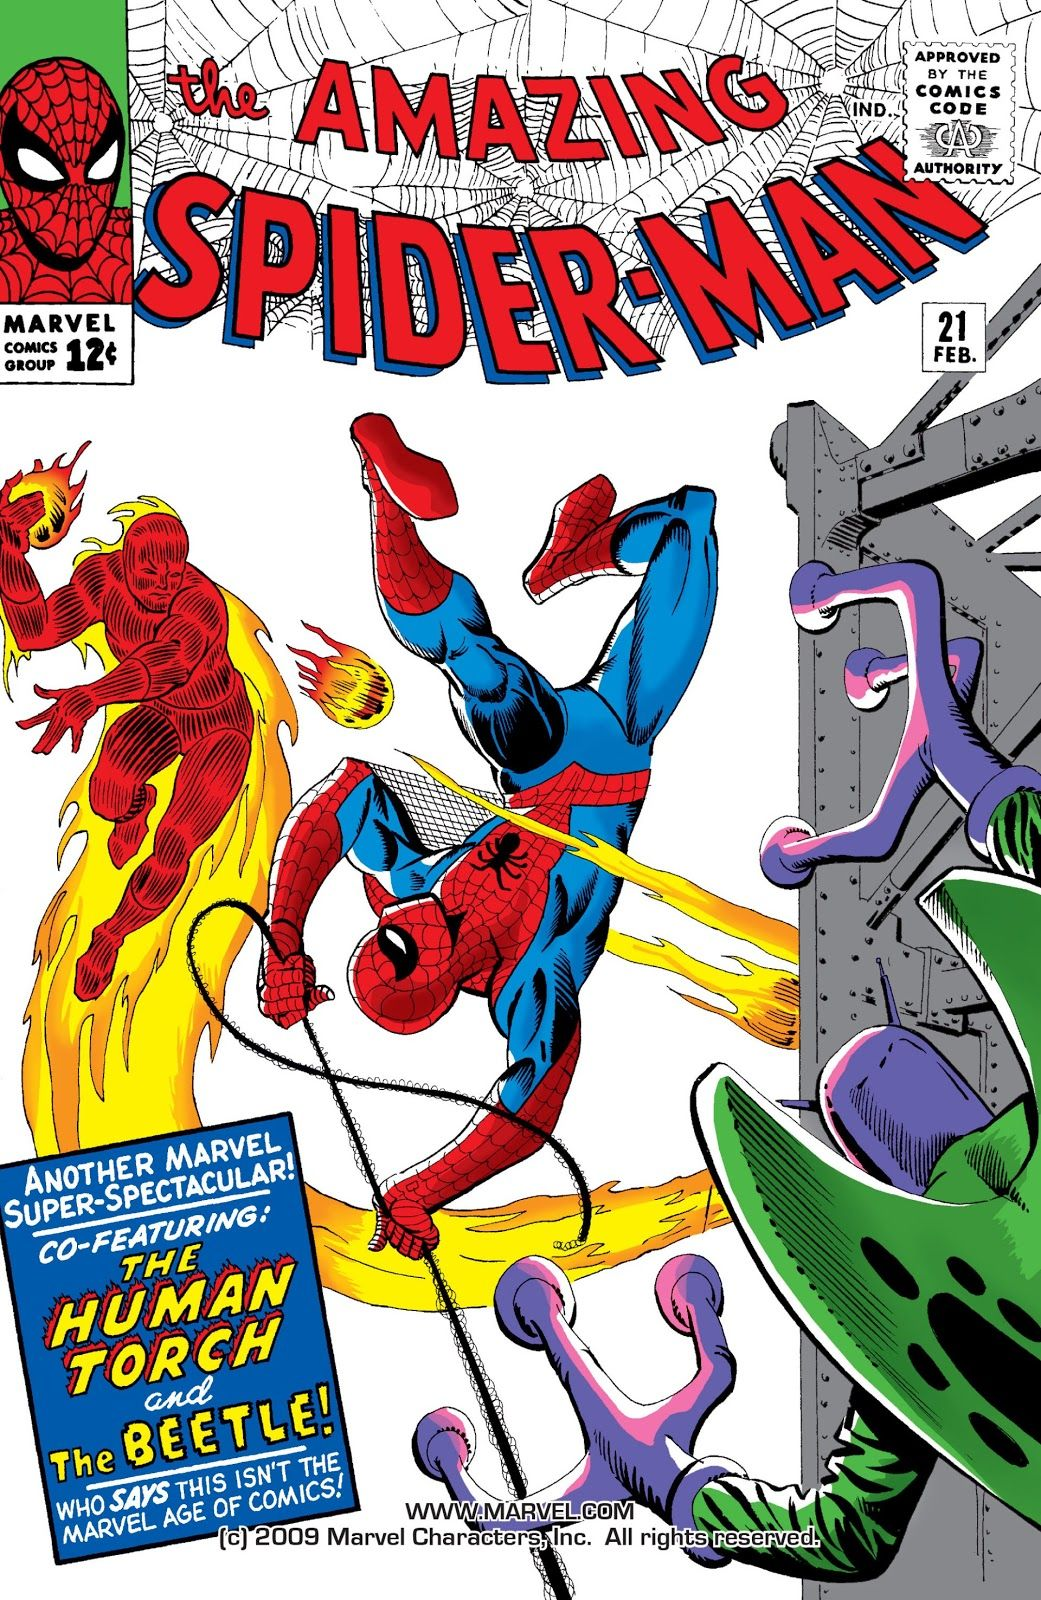 The Amazing Spider Man 1963 Issue 21 Read The Amazing Spider Man 1963 Issue 21 Comic Online In High Quali Marvel Cómics Historietas Comic Cómics Viejos